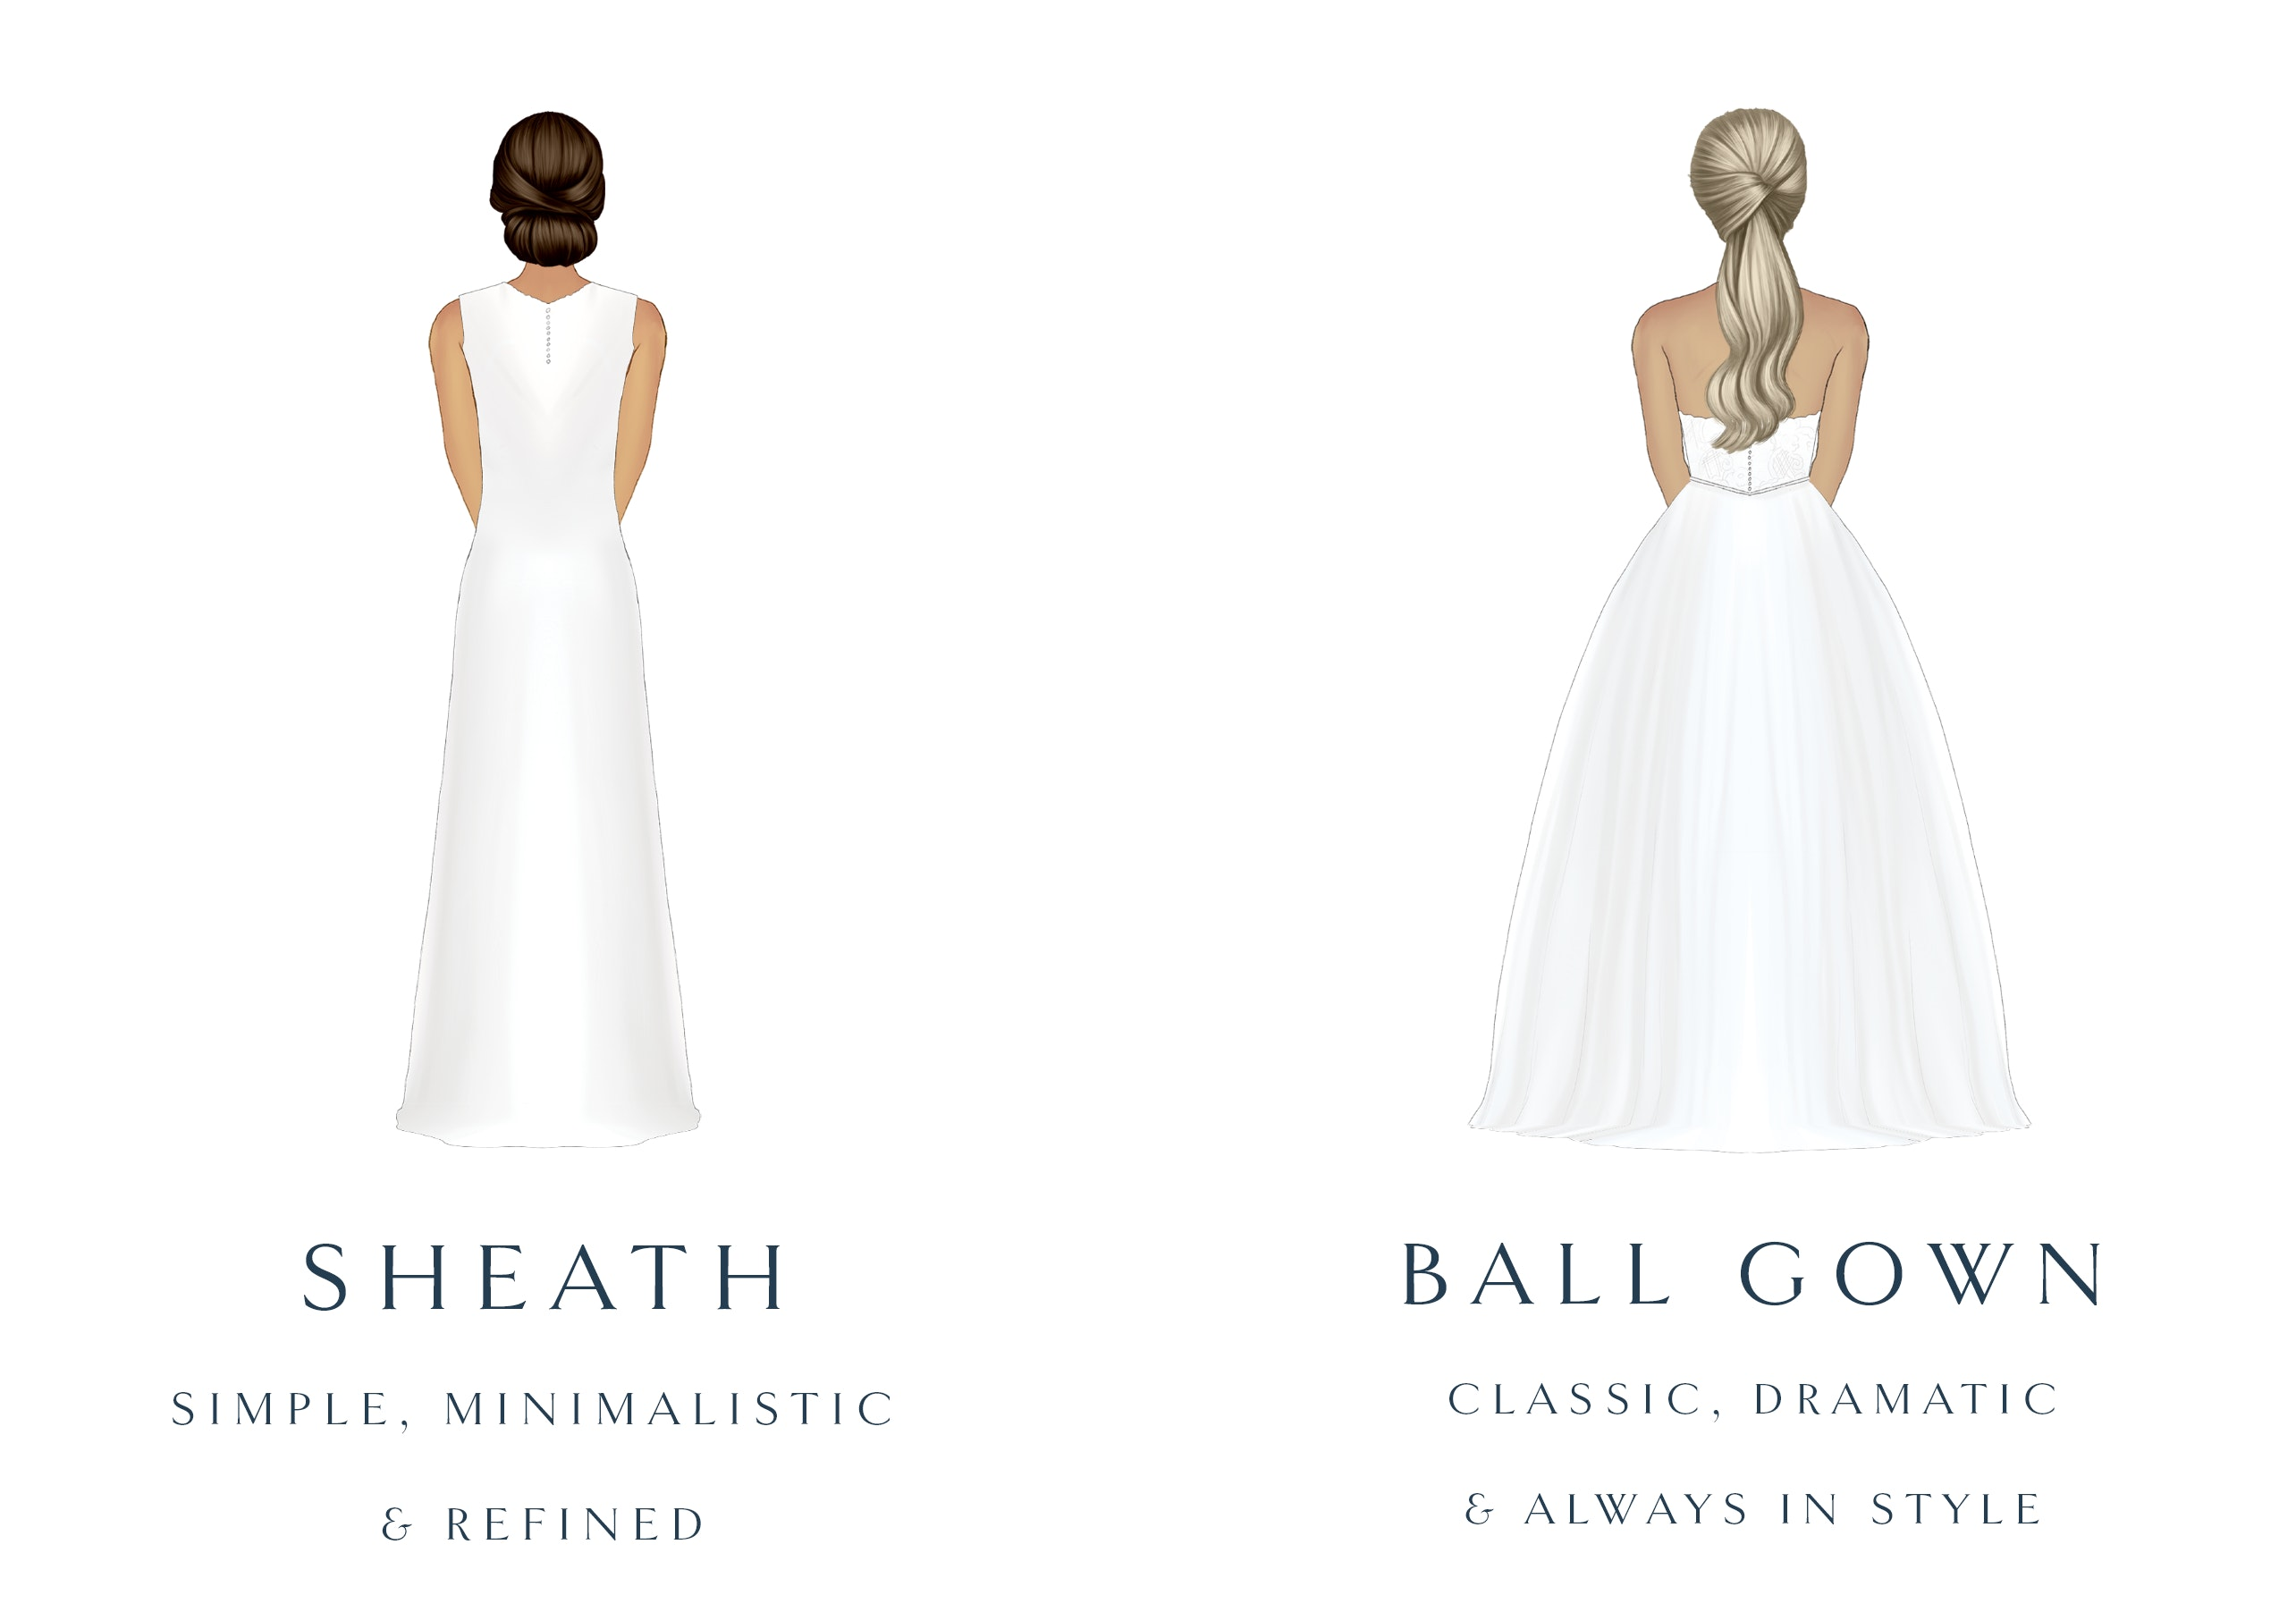 fit & flair and a-line wedding dress silhouette